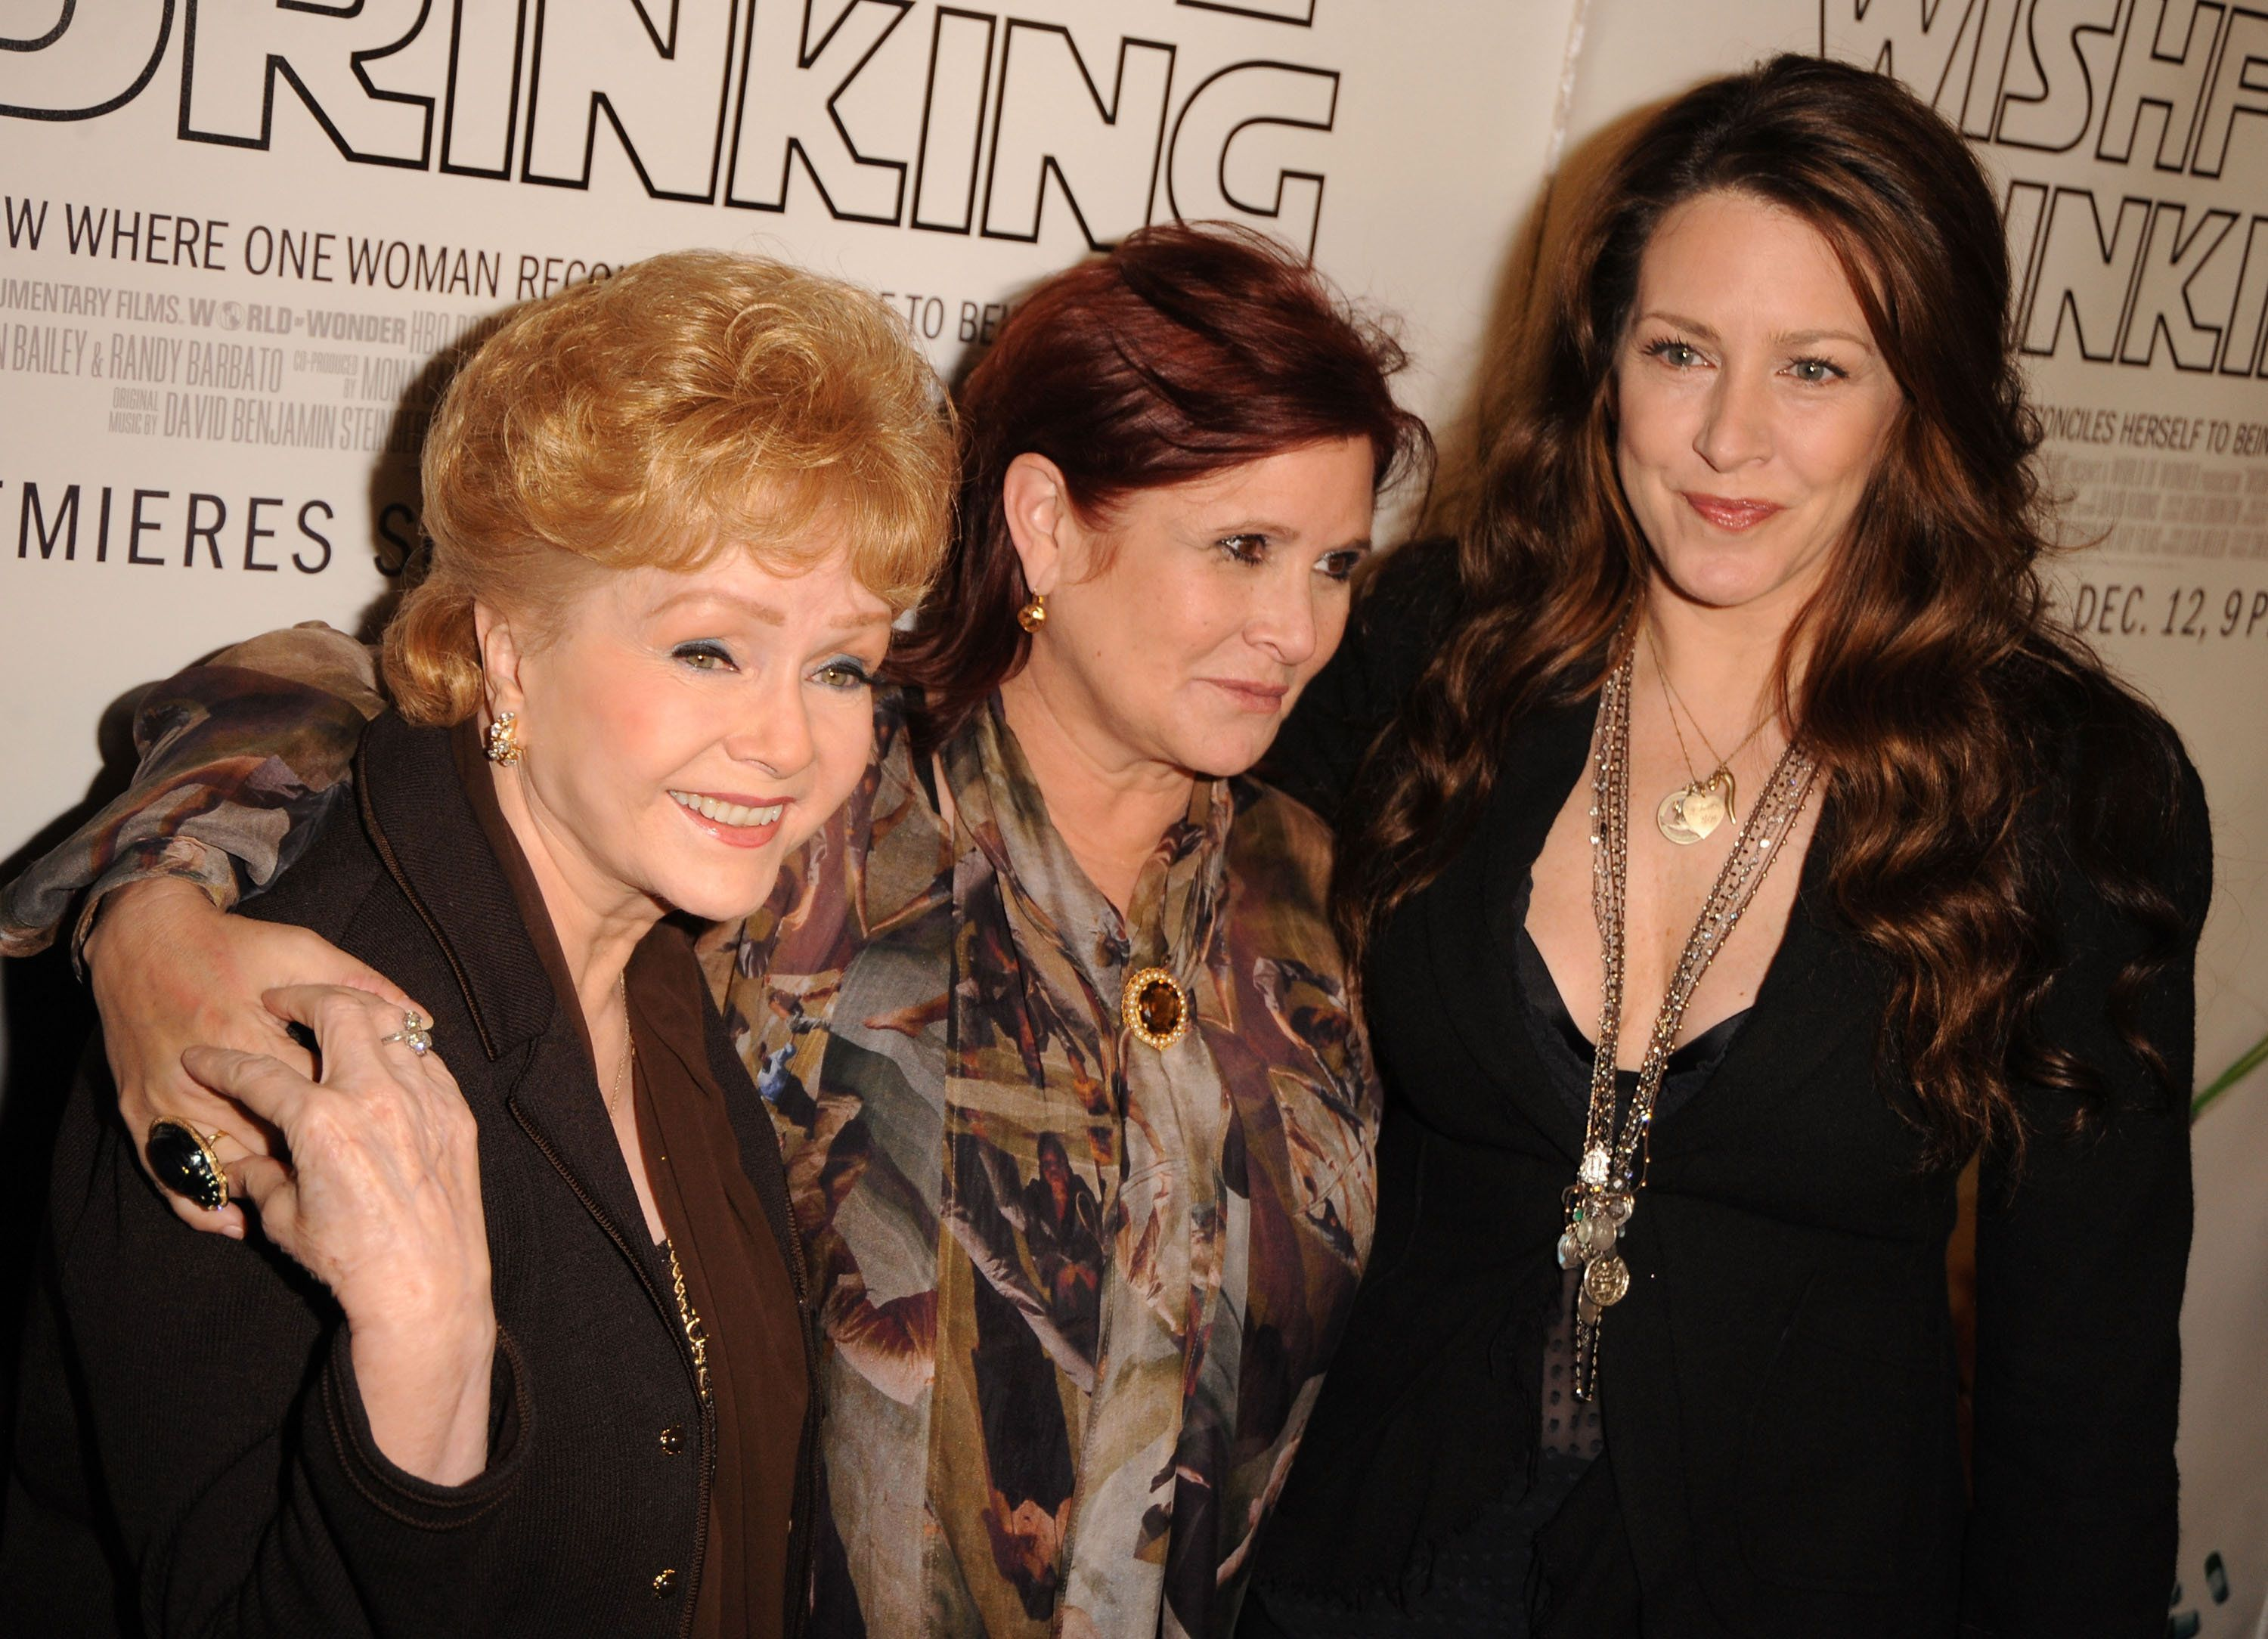 Joely Fisher (right) spent time with Debbie Reynolds (left) in the hospital at Carrie Fisher's (center)...